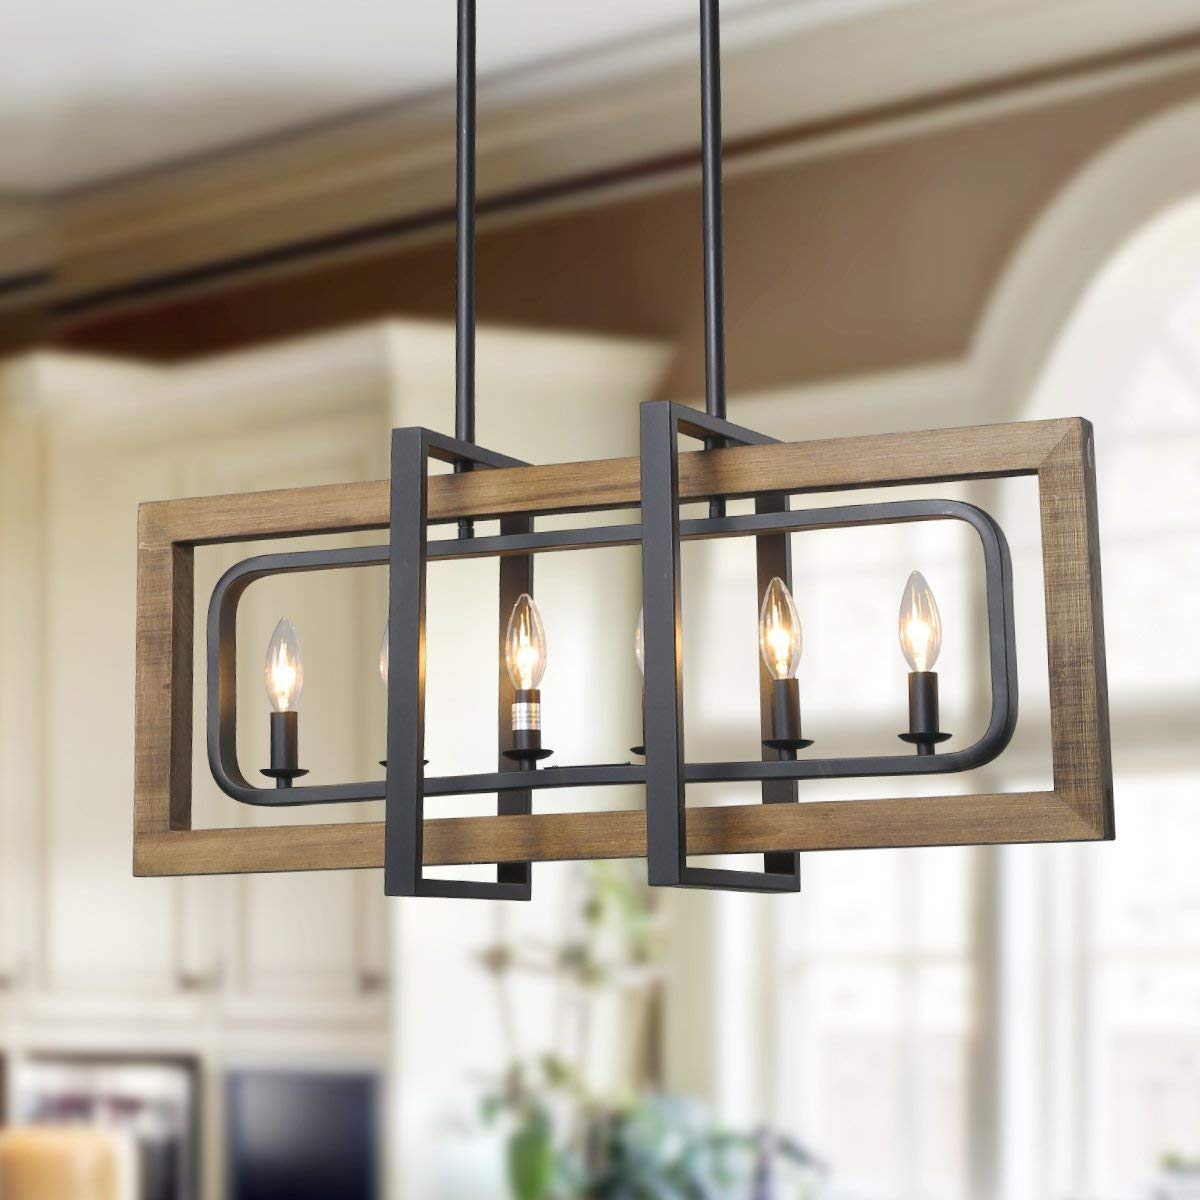 Amazon com log barn 6 lights farmhouse island pendant chandelier in distressed wood and matte black metal finish 31 5 large kitchen light fixture